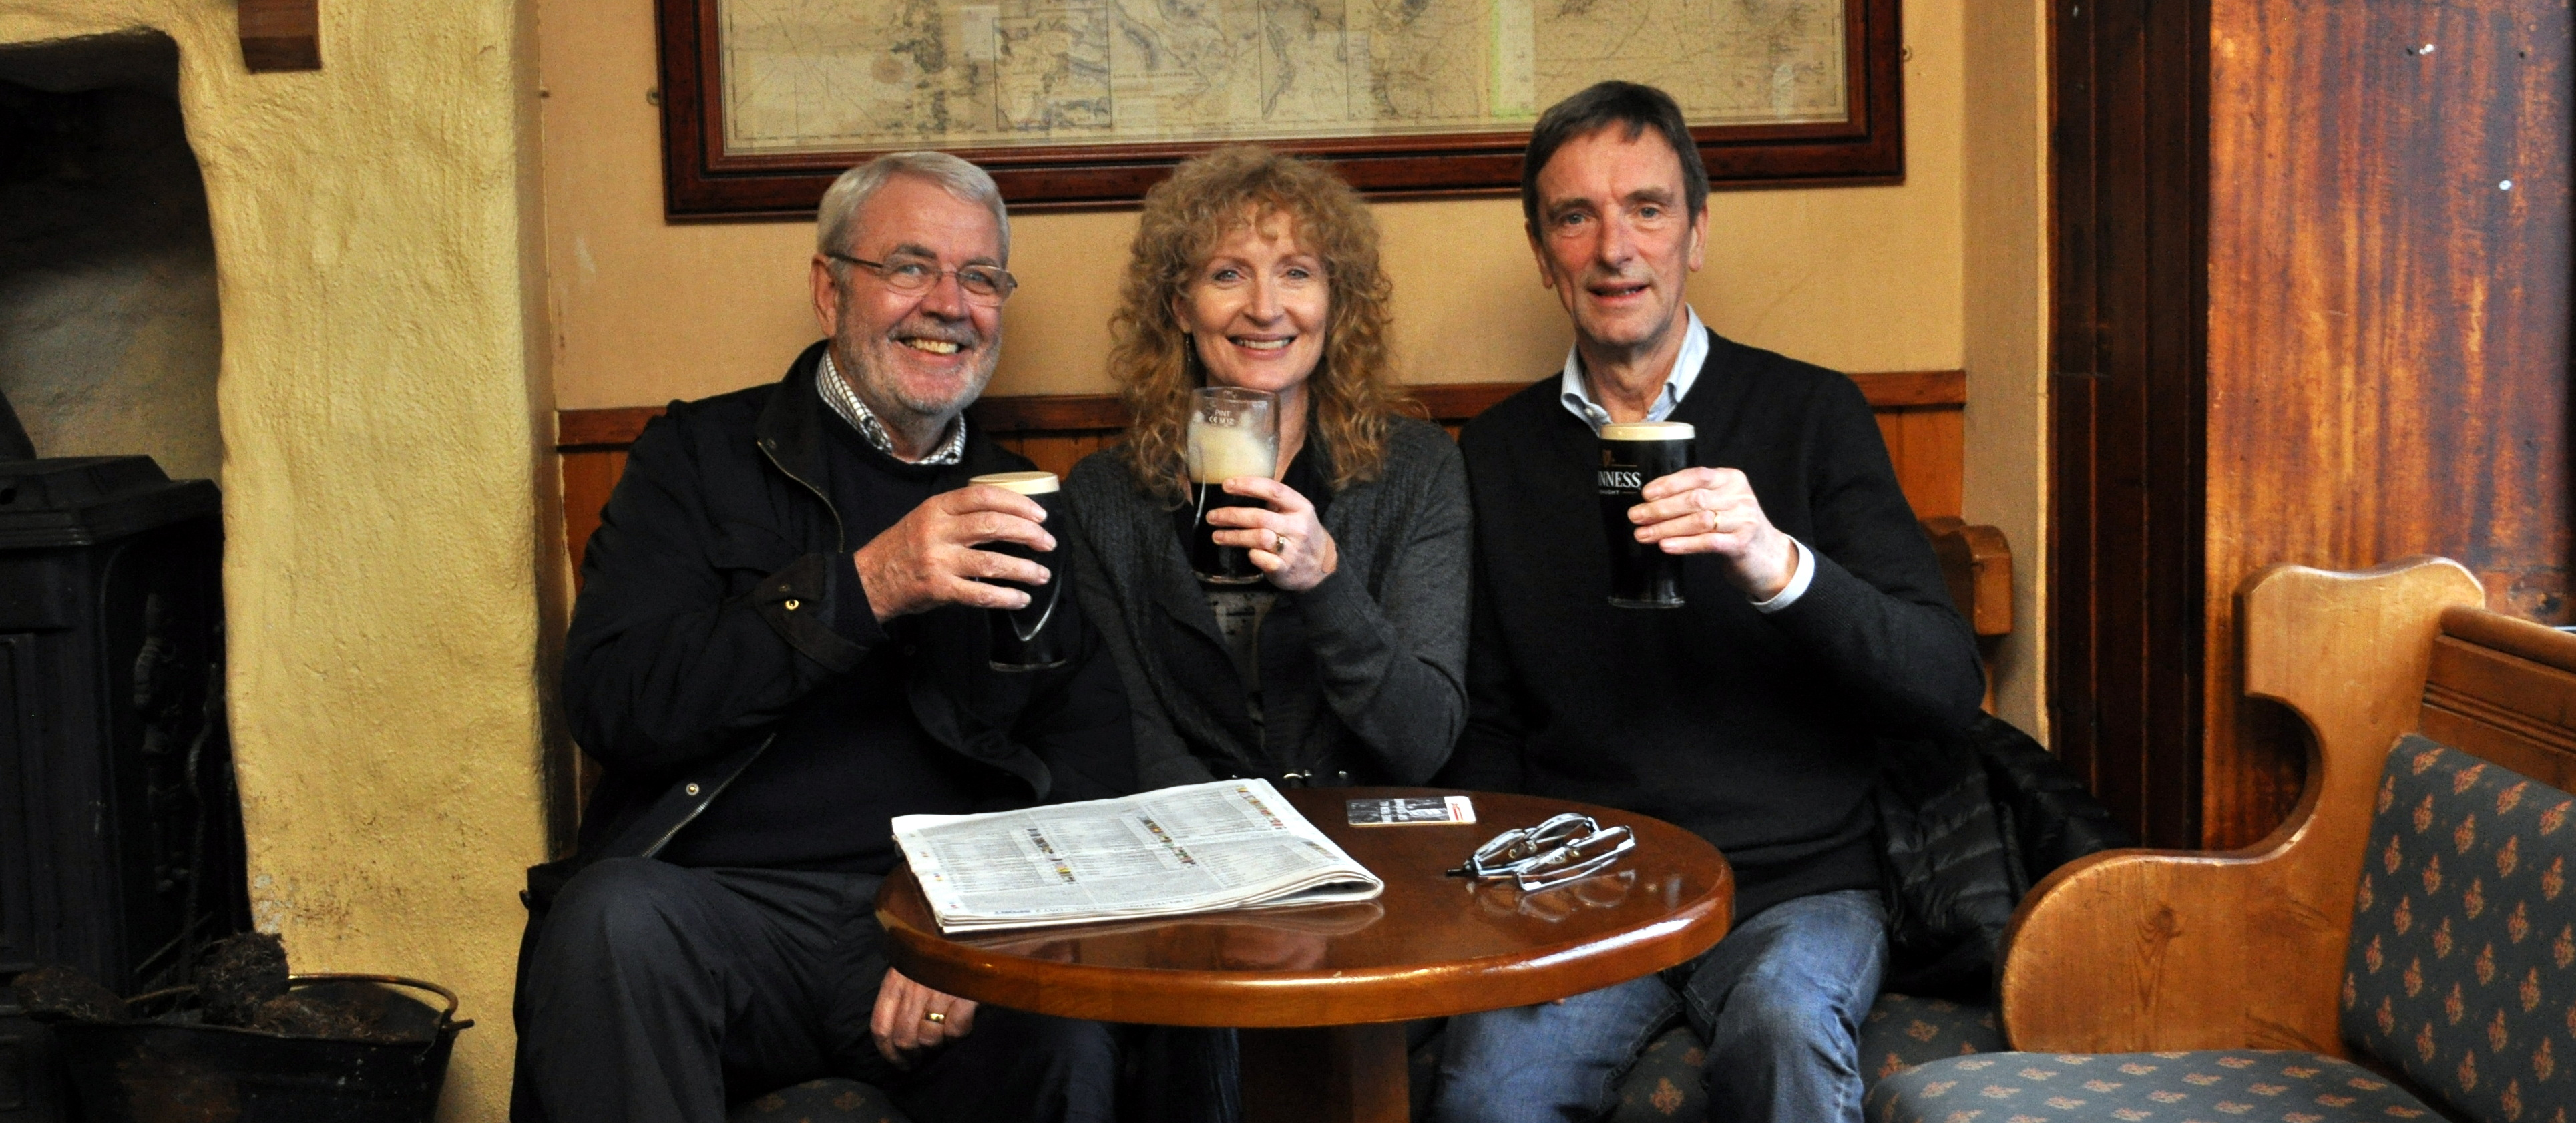 BEER PRICES: Irish farmers say a pint of Guinness should be cheaper